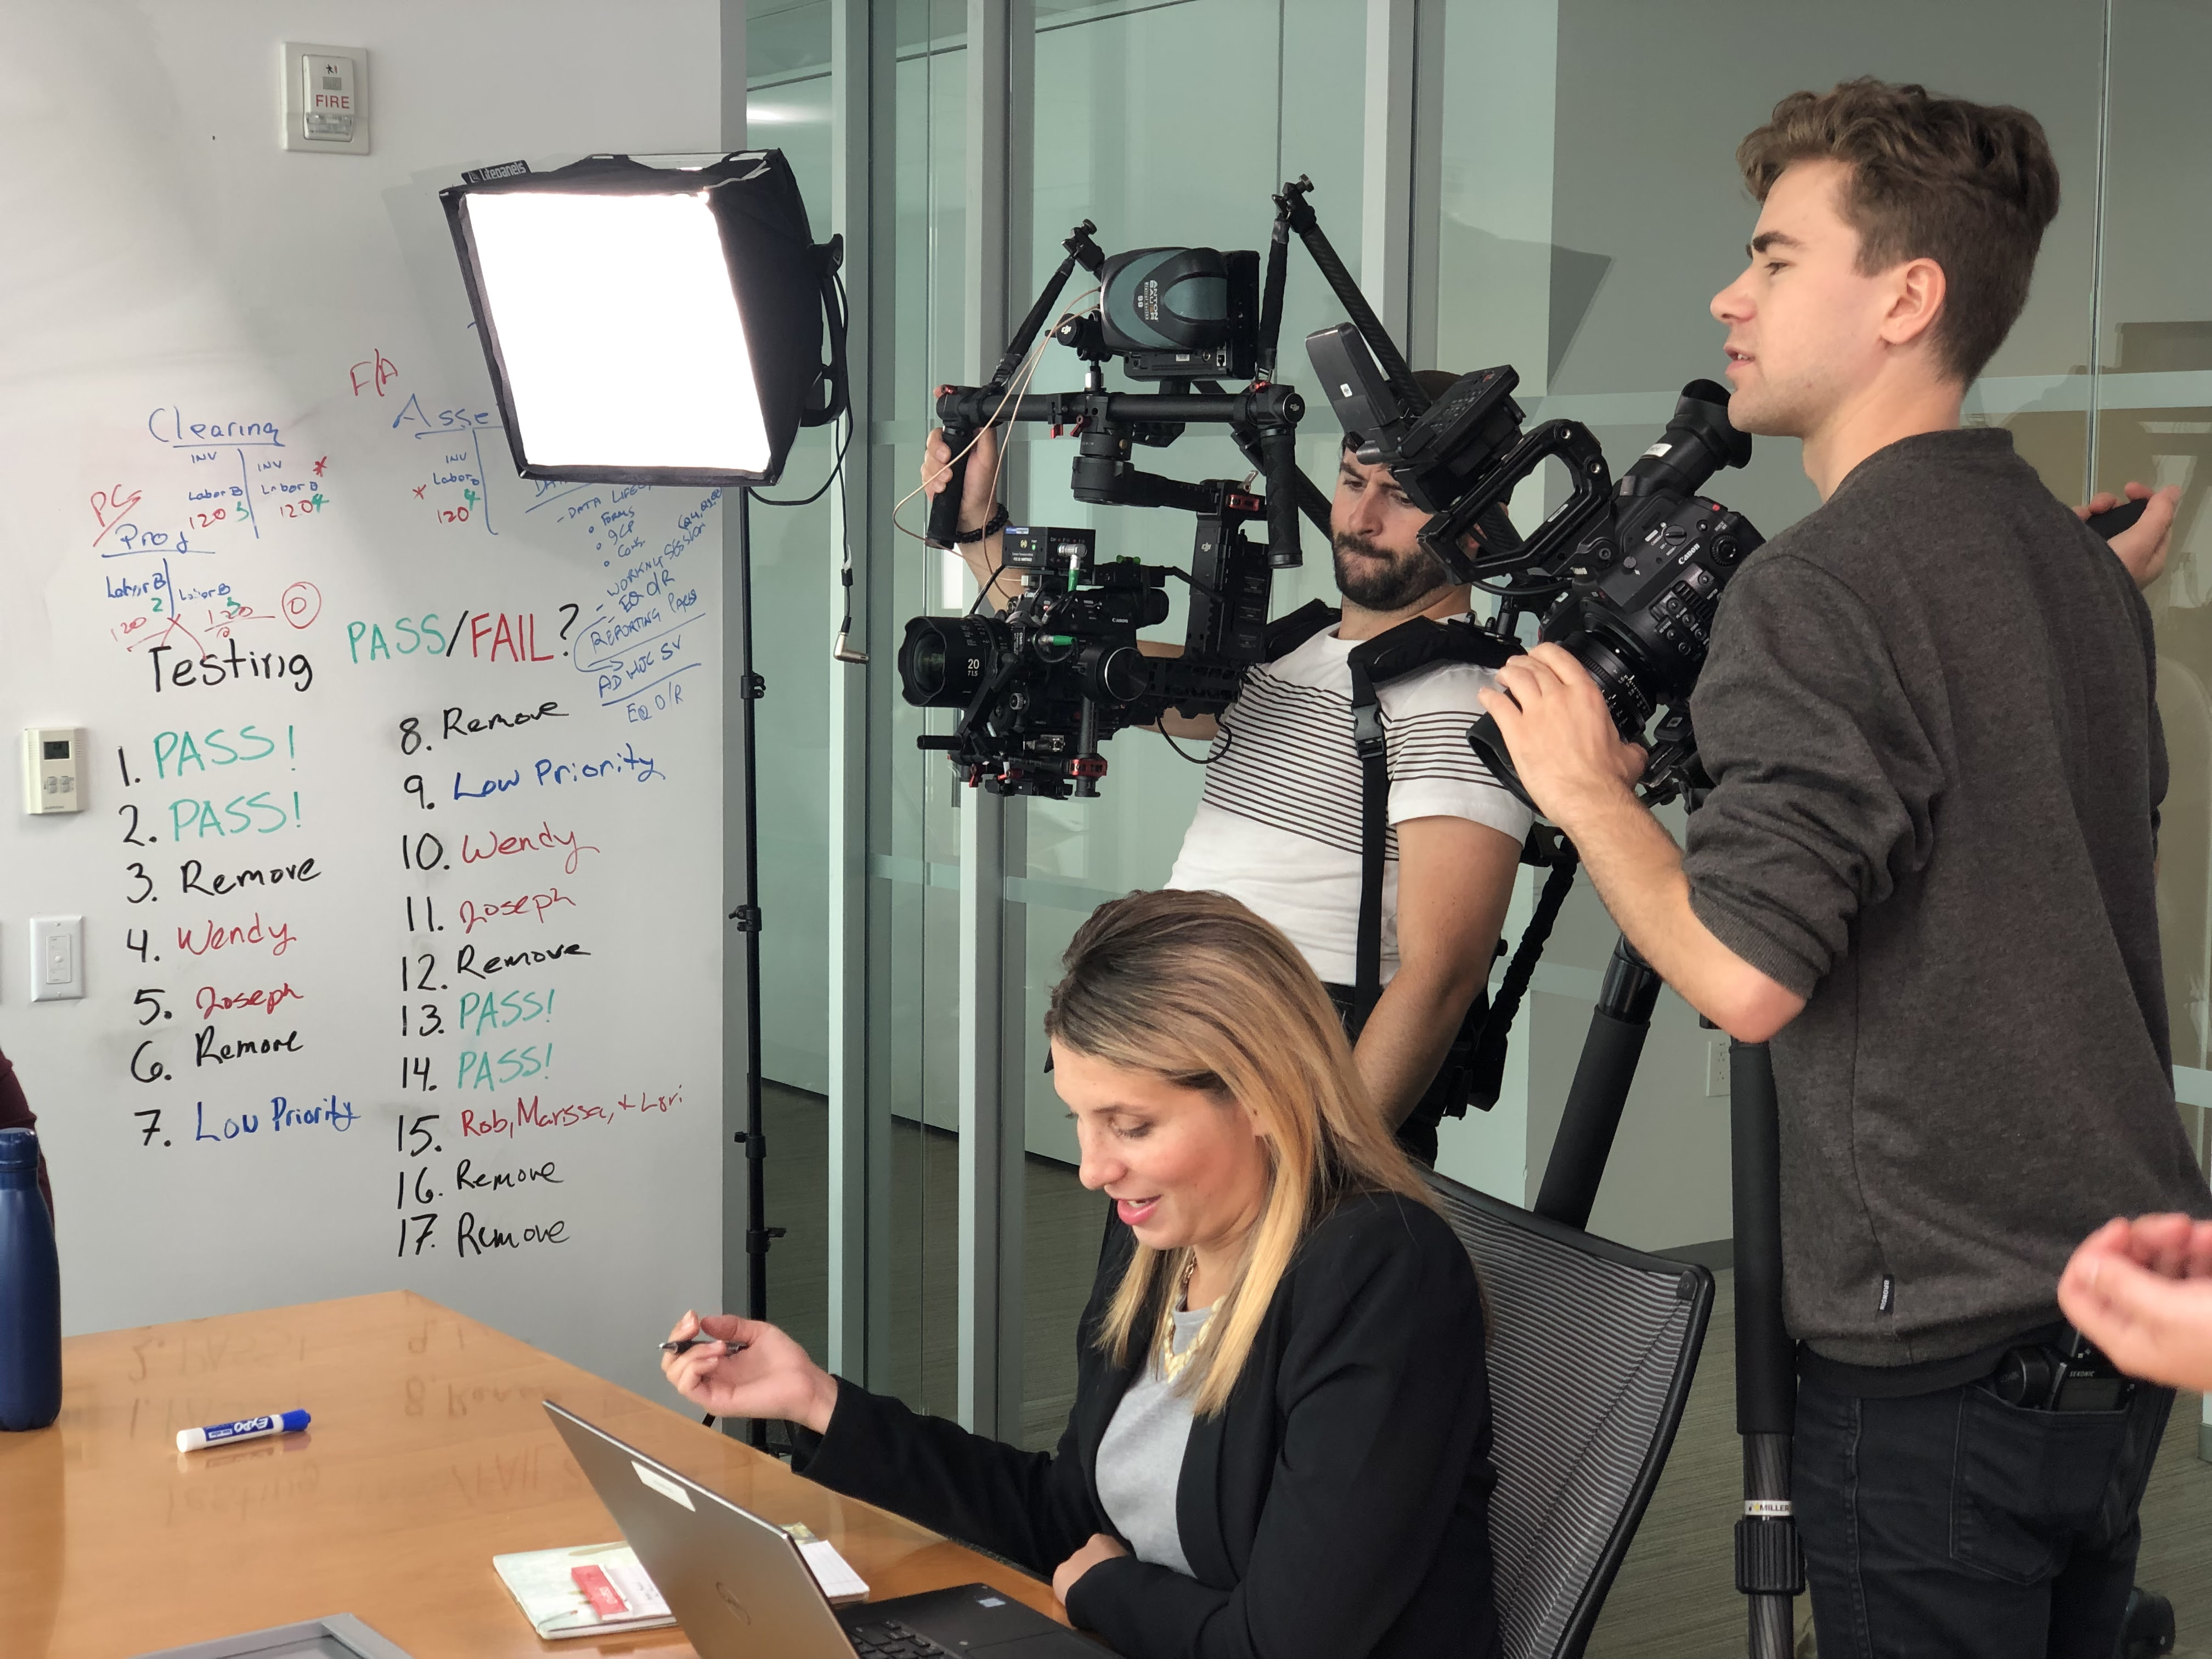 THE ESSENTIAL GUIDE TO SMALL BUSINESS VIDEOS